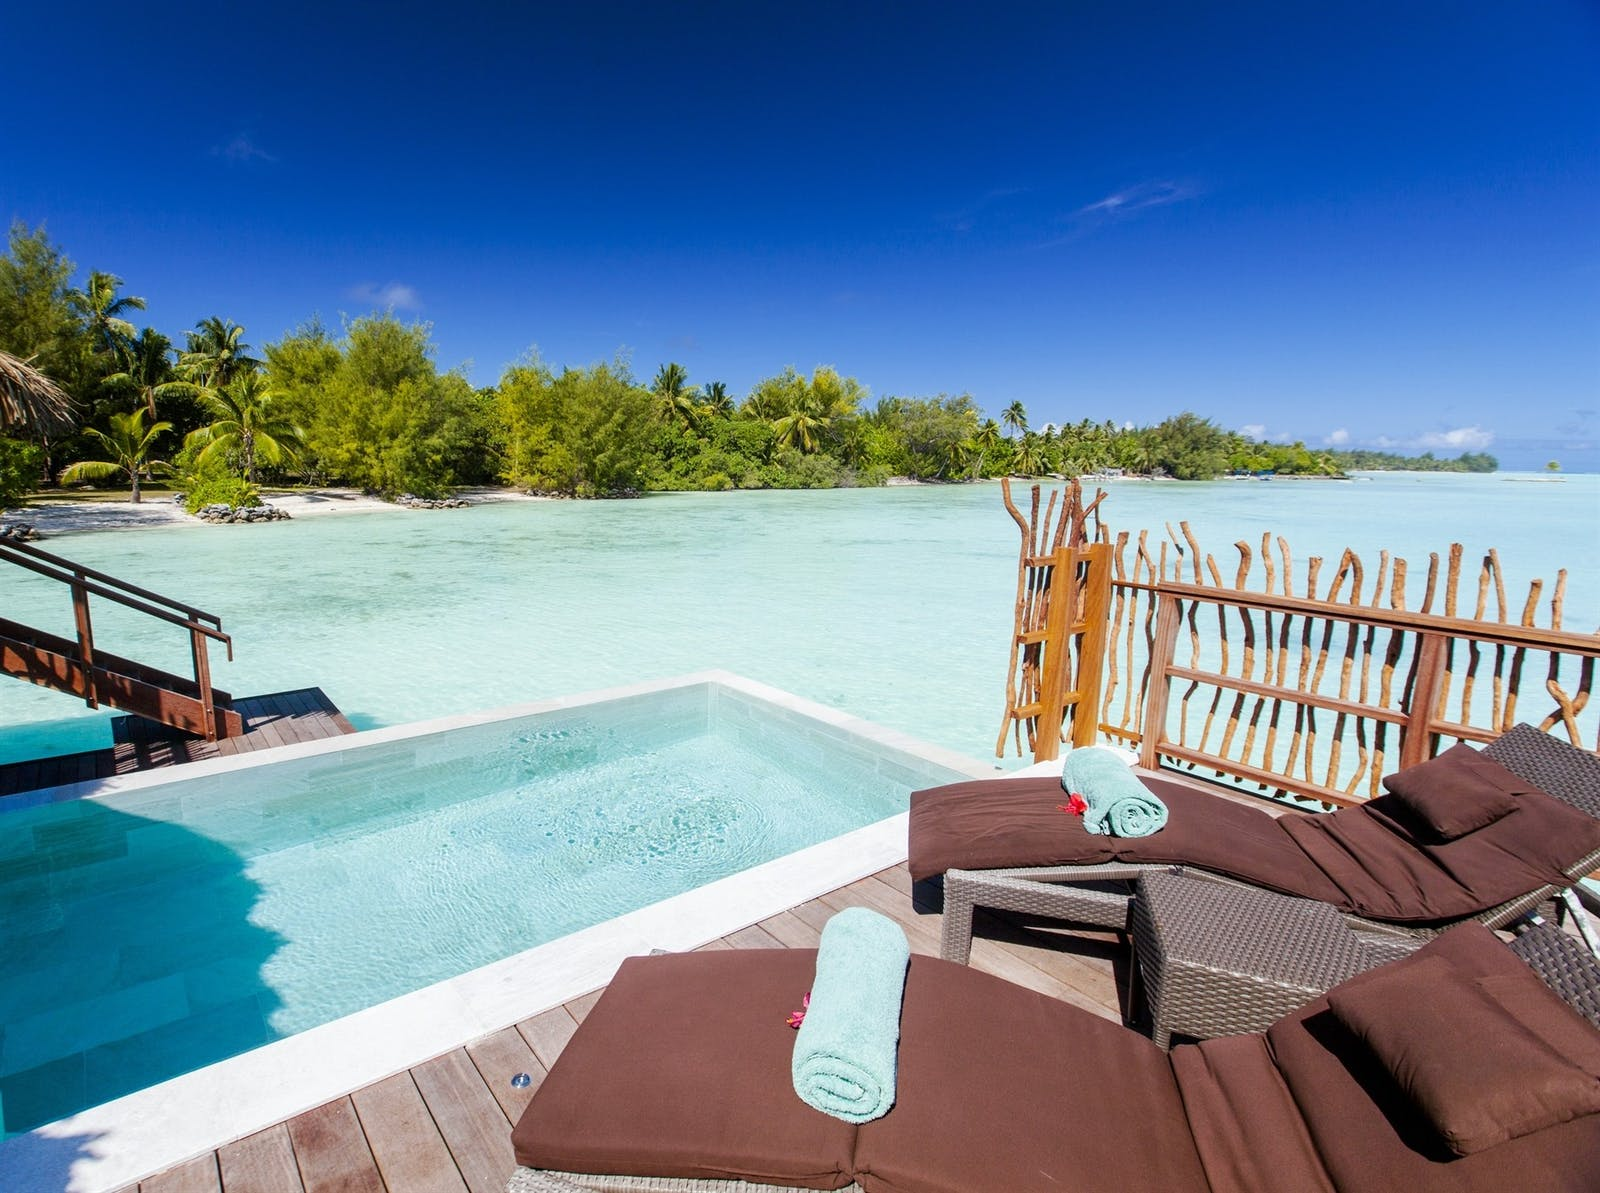 Pool Overwater Villa at InterContinental Bora Bora Resort & Thalasso Spa, French Polynesia